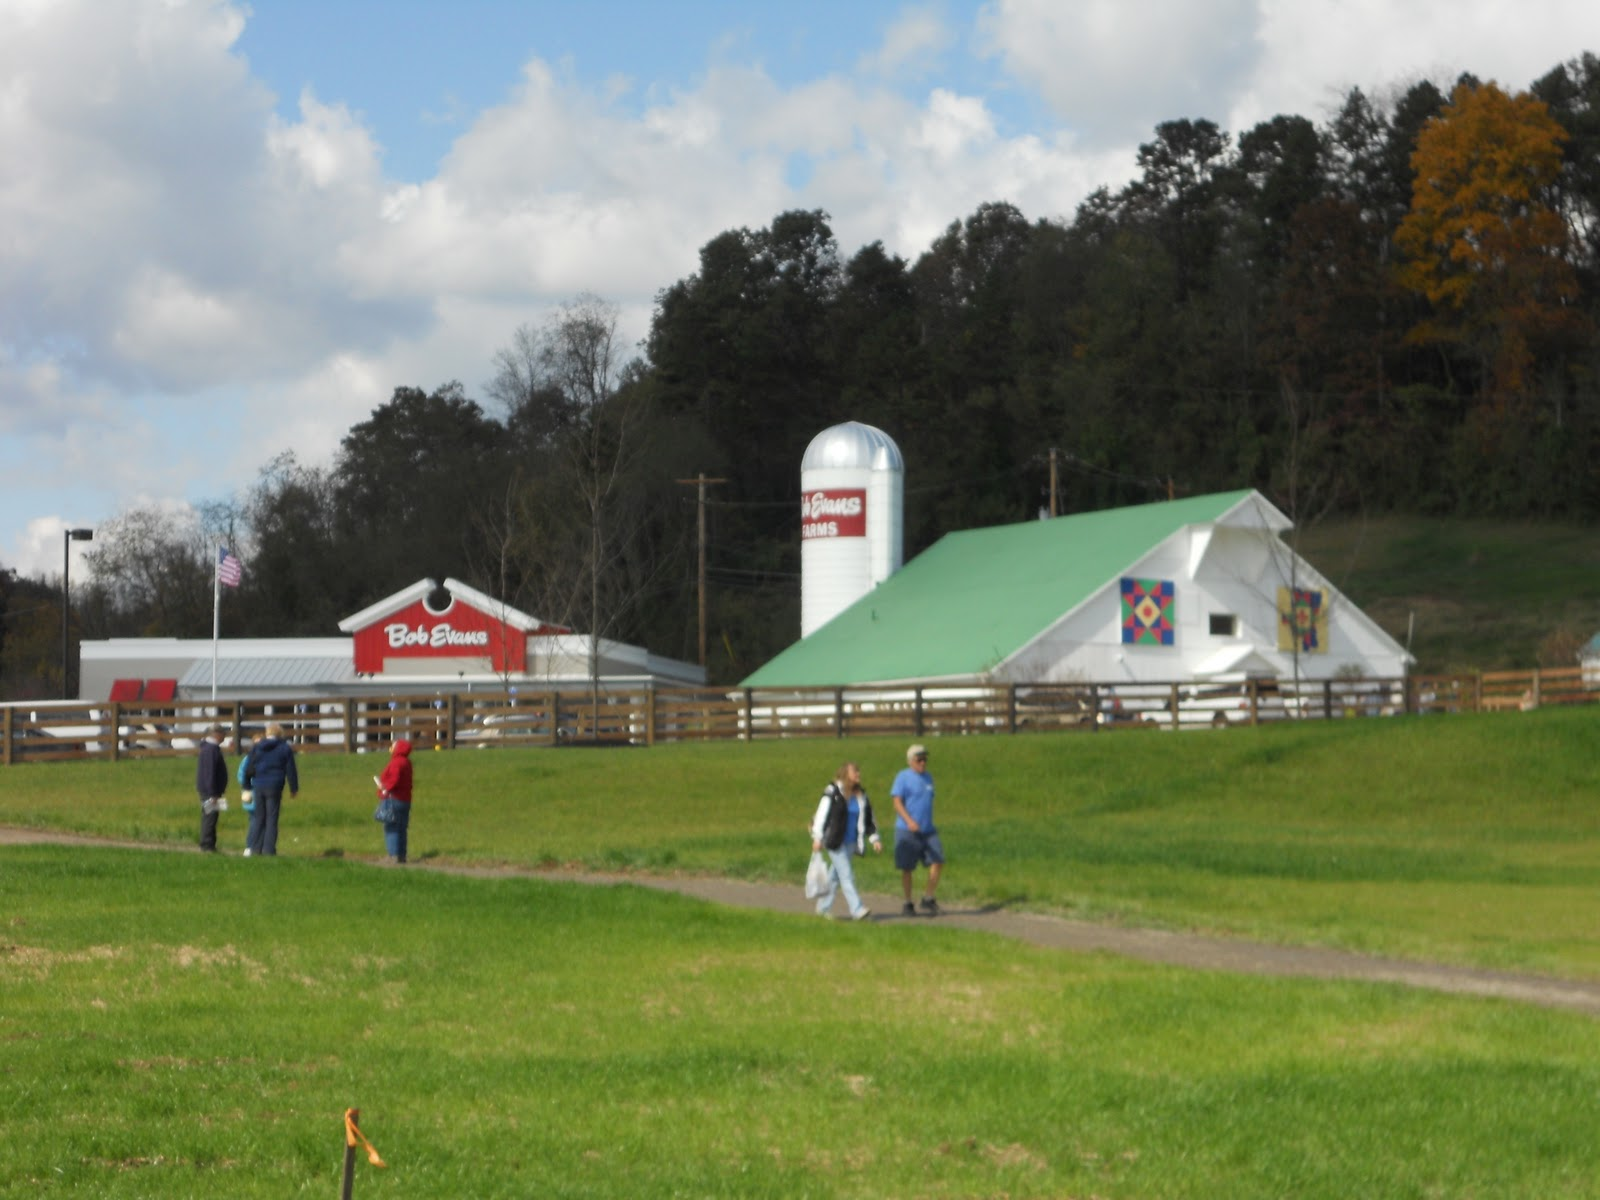 The Bob Evans Farm, with the restaurant visible in the background.